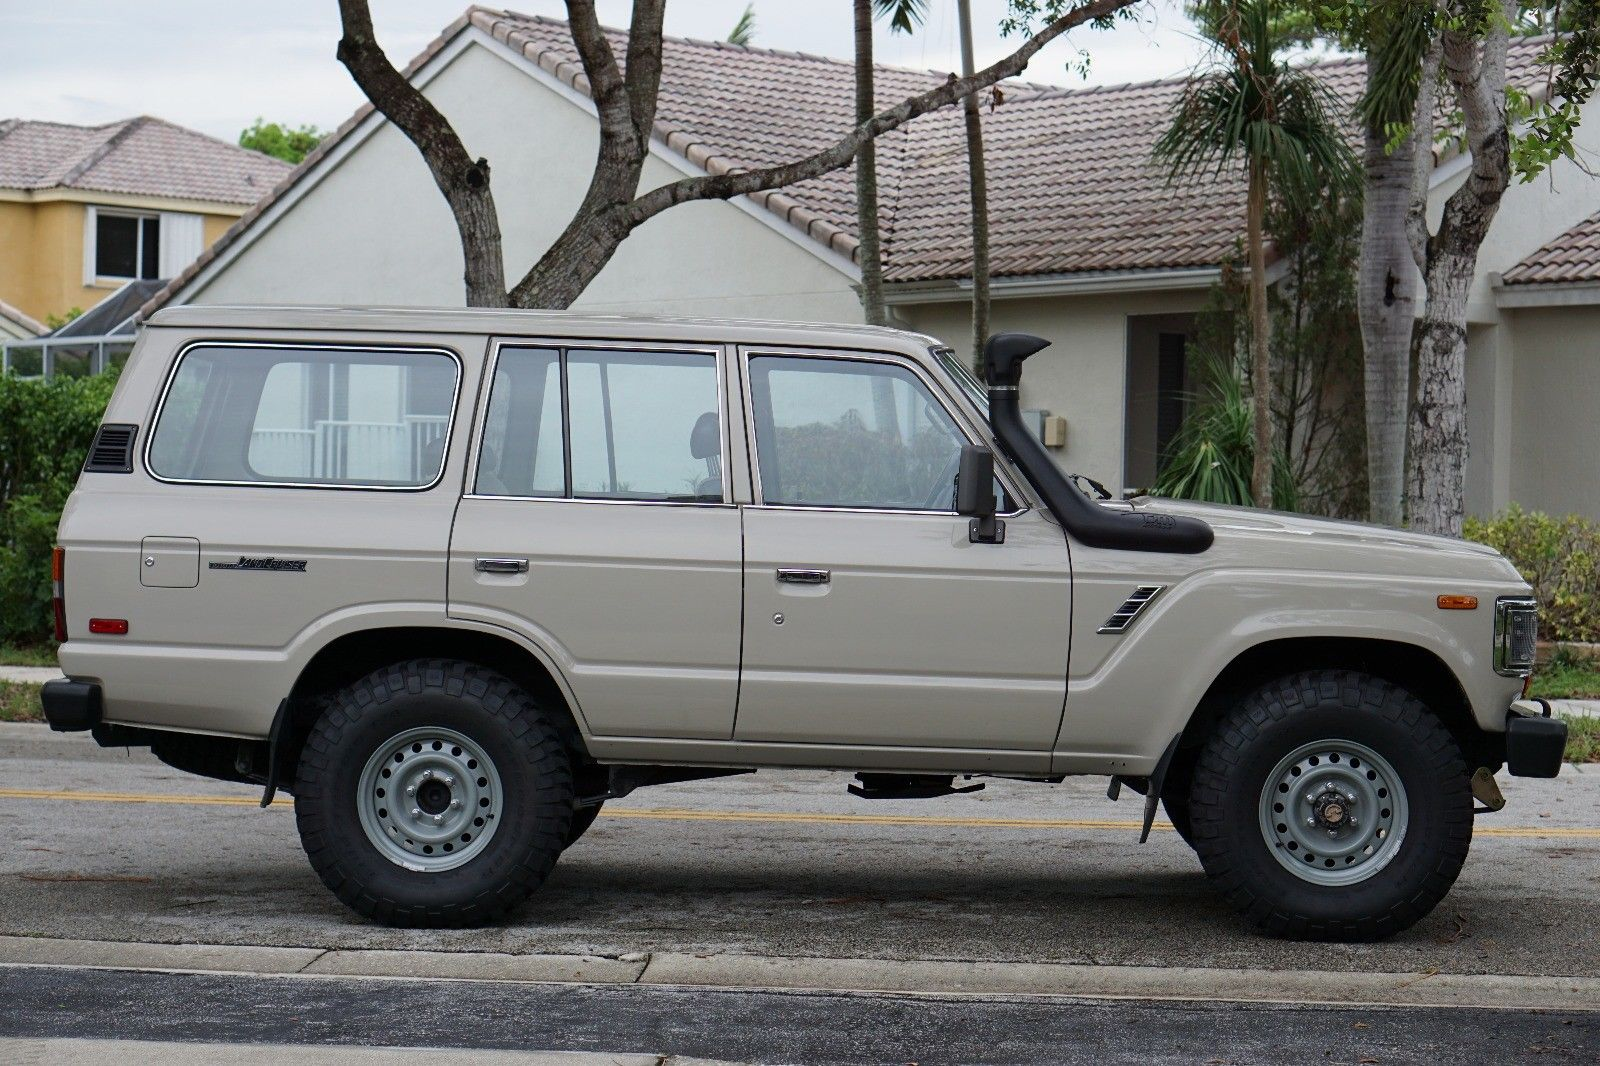 Amazing 1988 Toyota Land Cruiser Fj 62 1988 Toyota Land